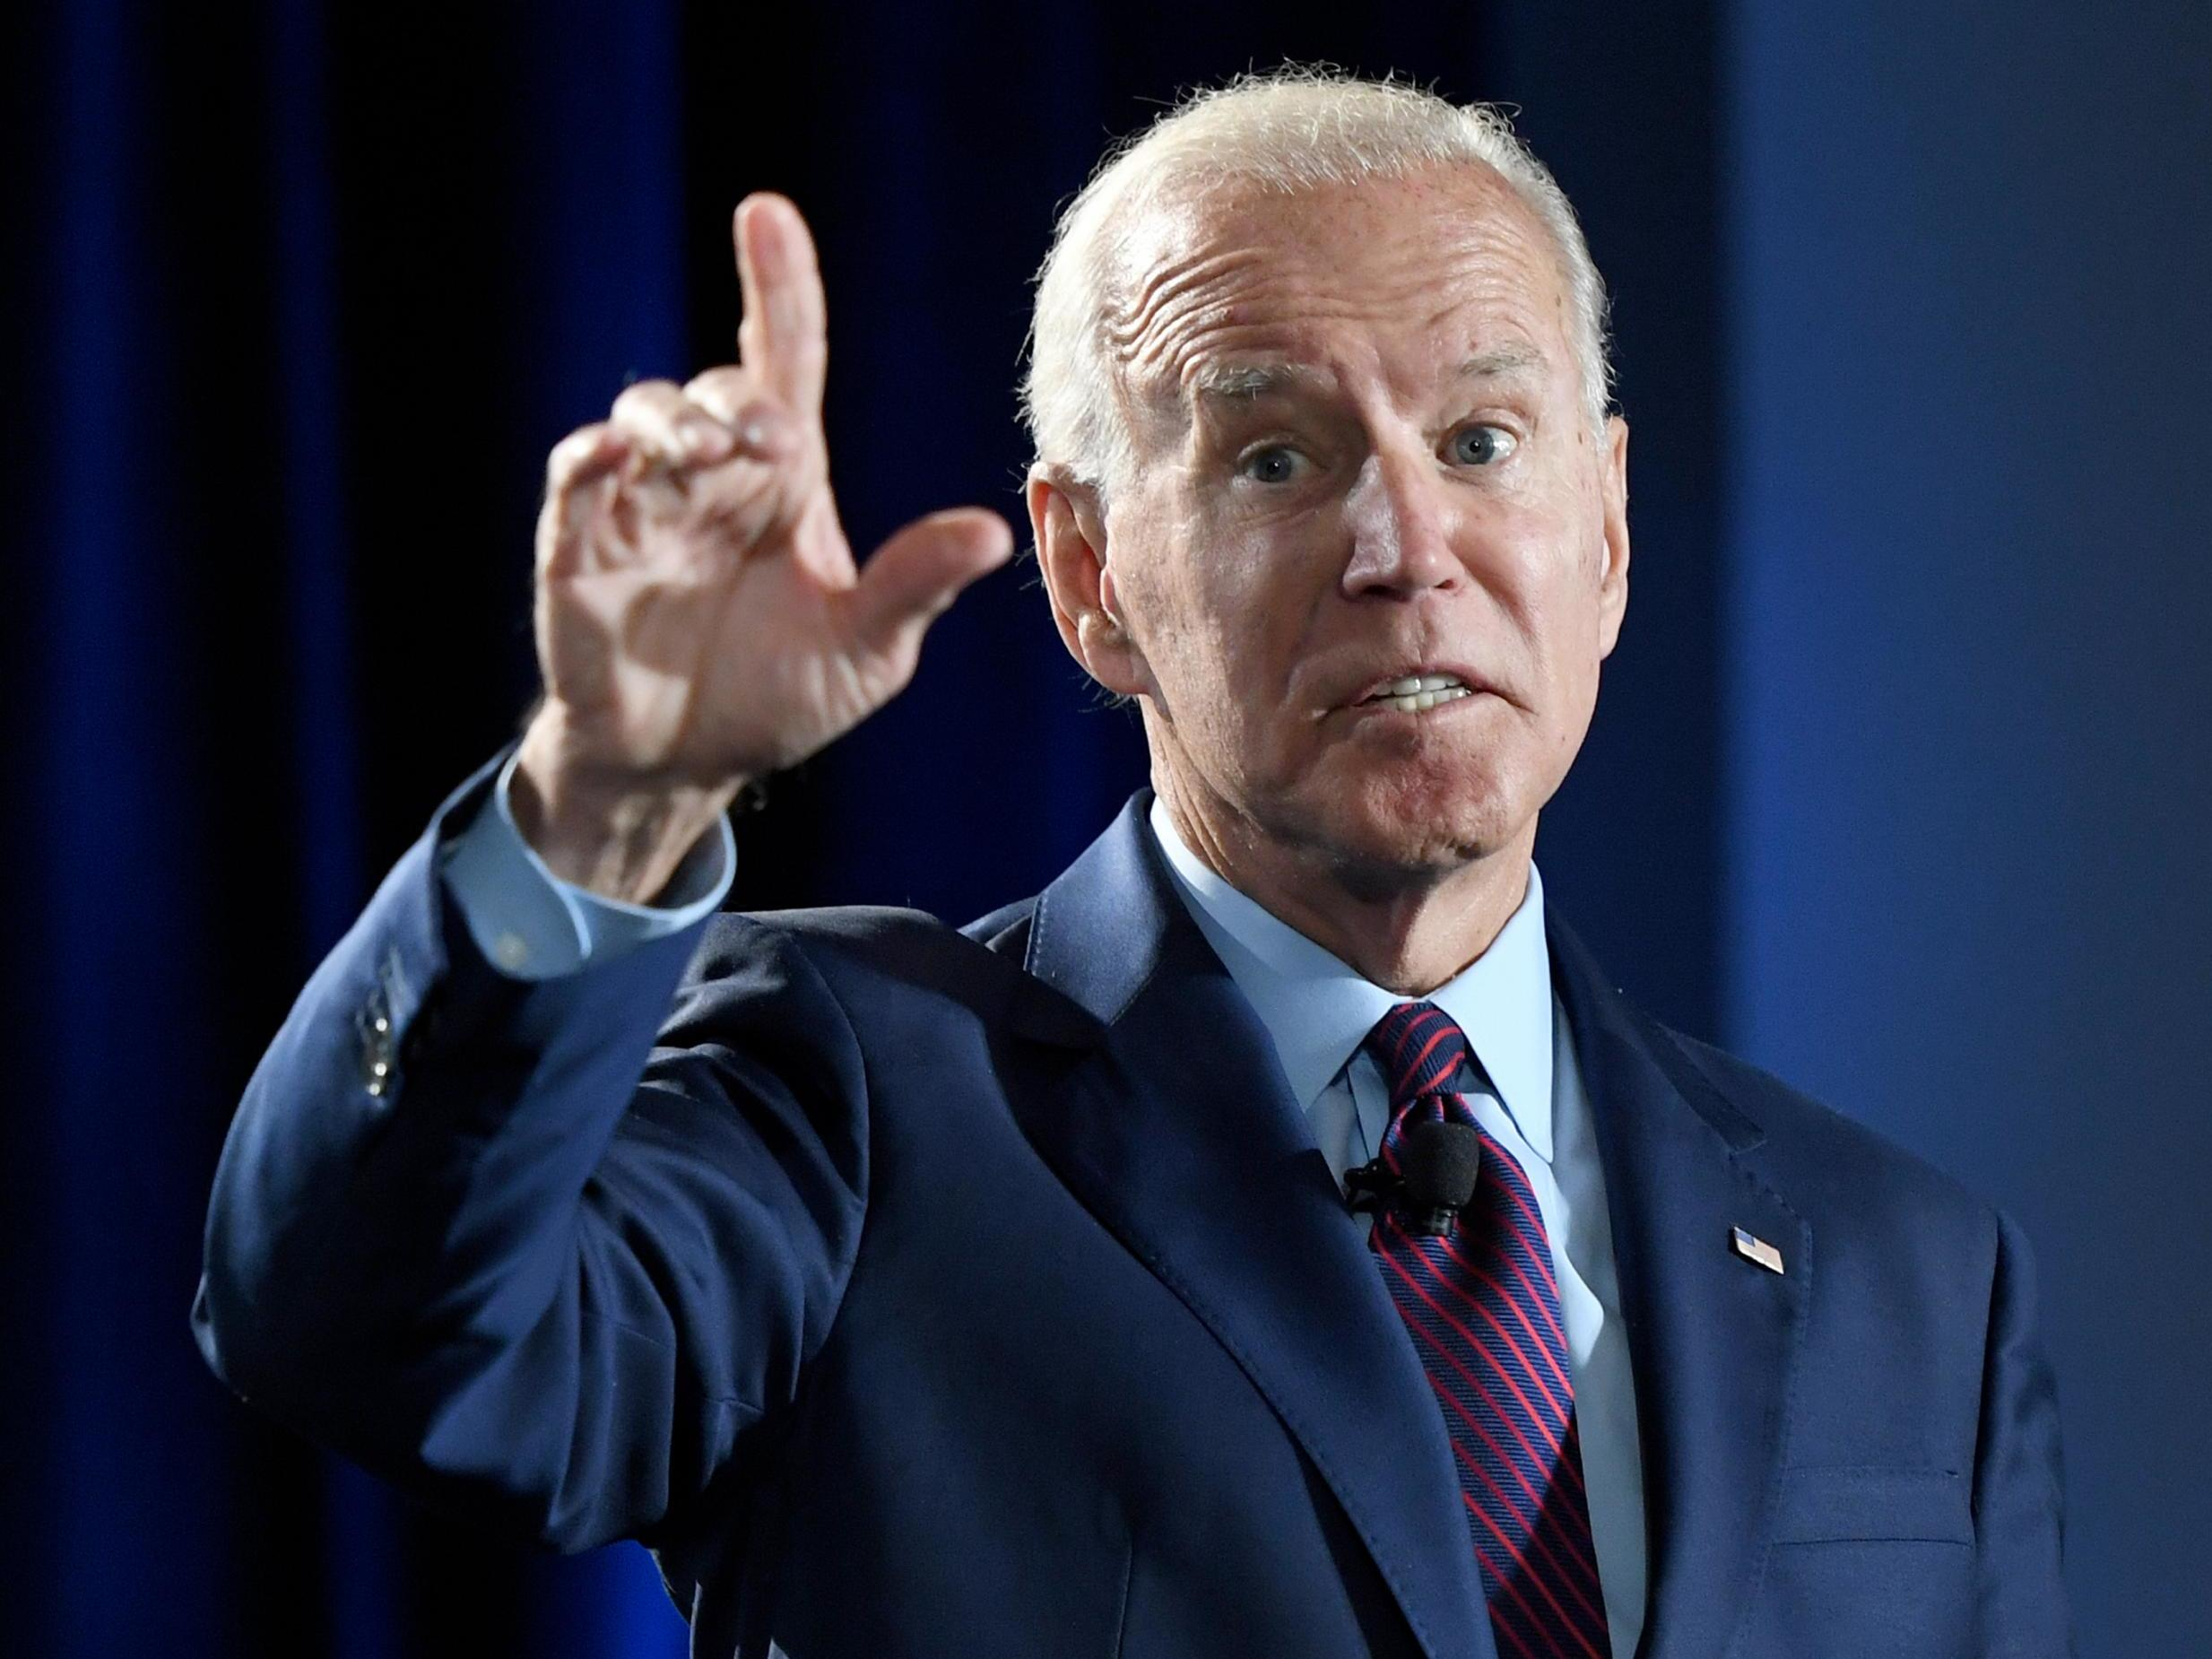 The Democratic nomination is a three-horse race between Biden, Bernie and Warren. That's a good thing for everyone